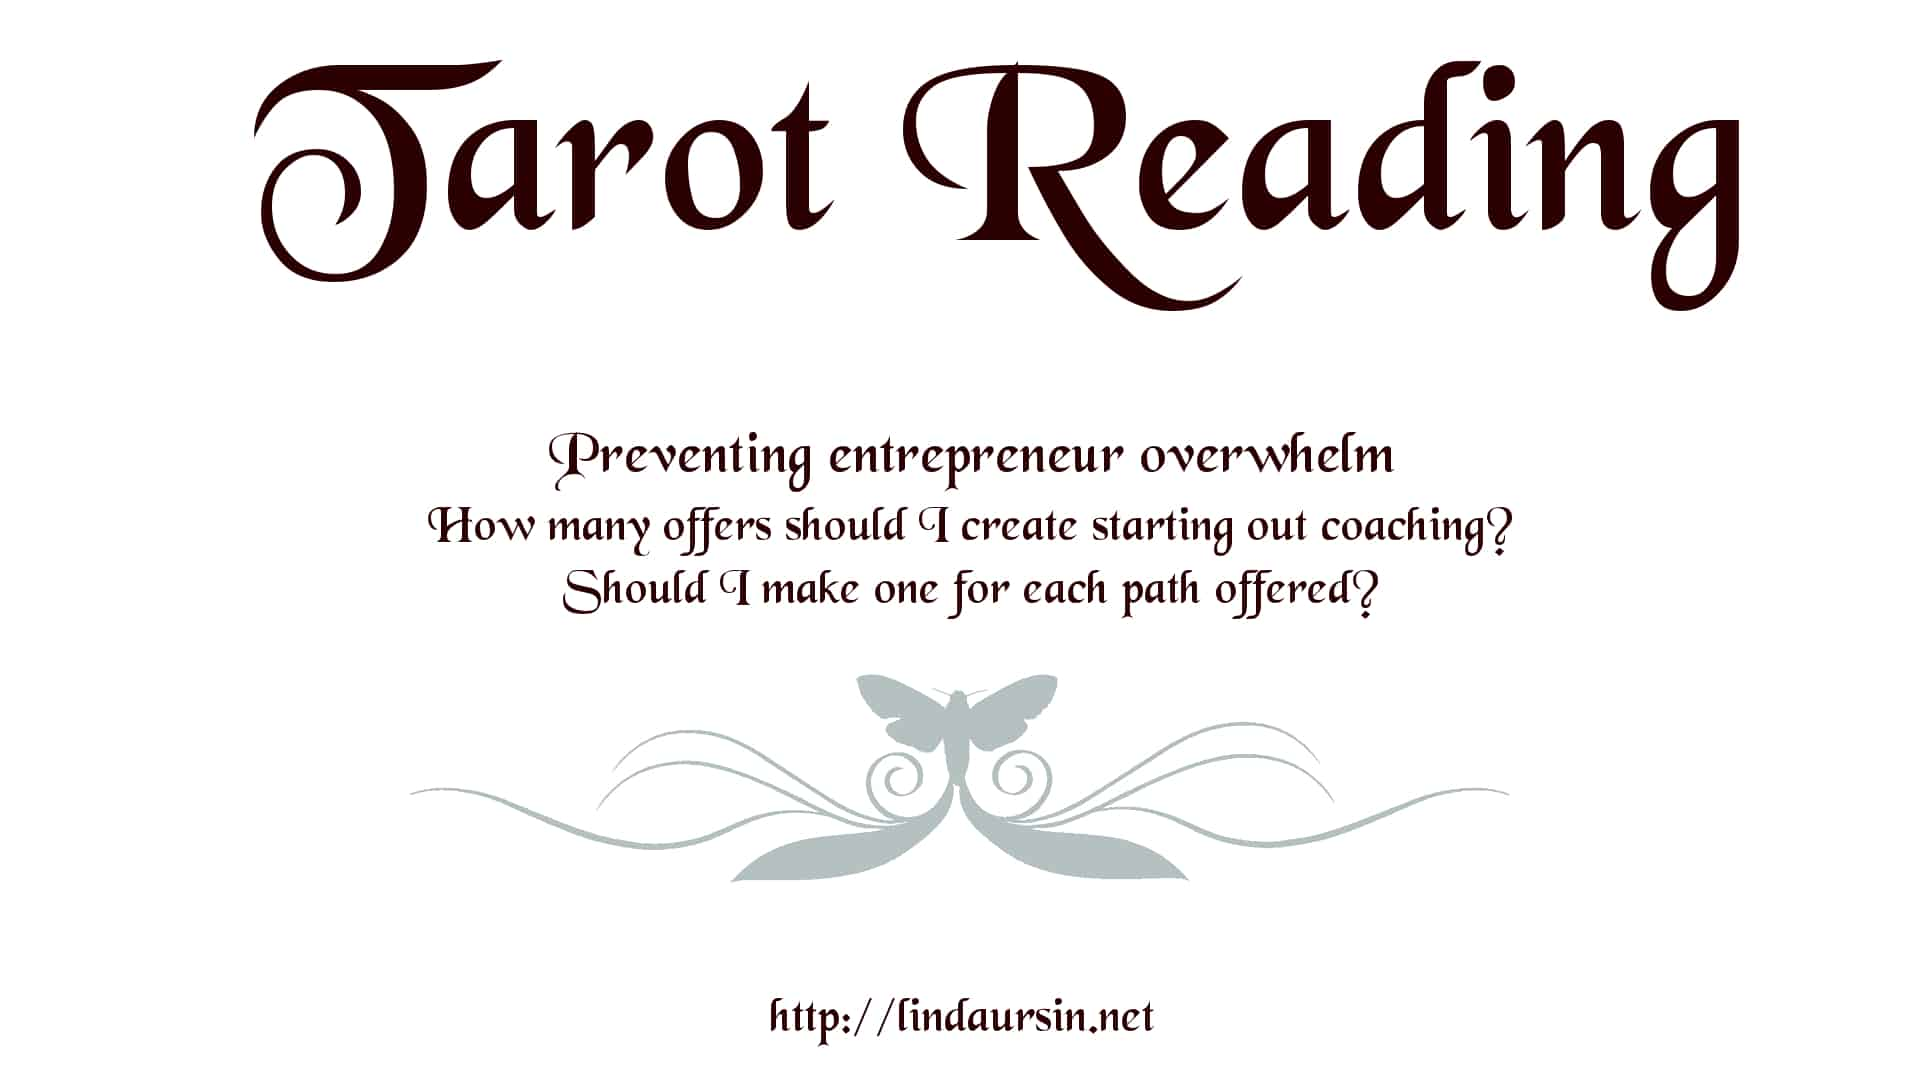 A Tarot reading to prevent entrepreneur overwhelm